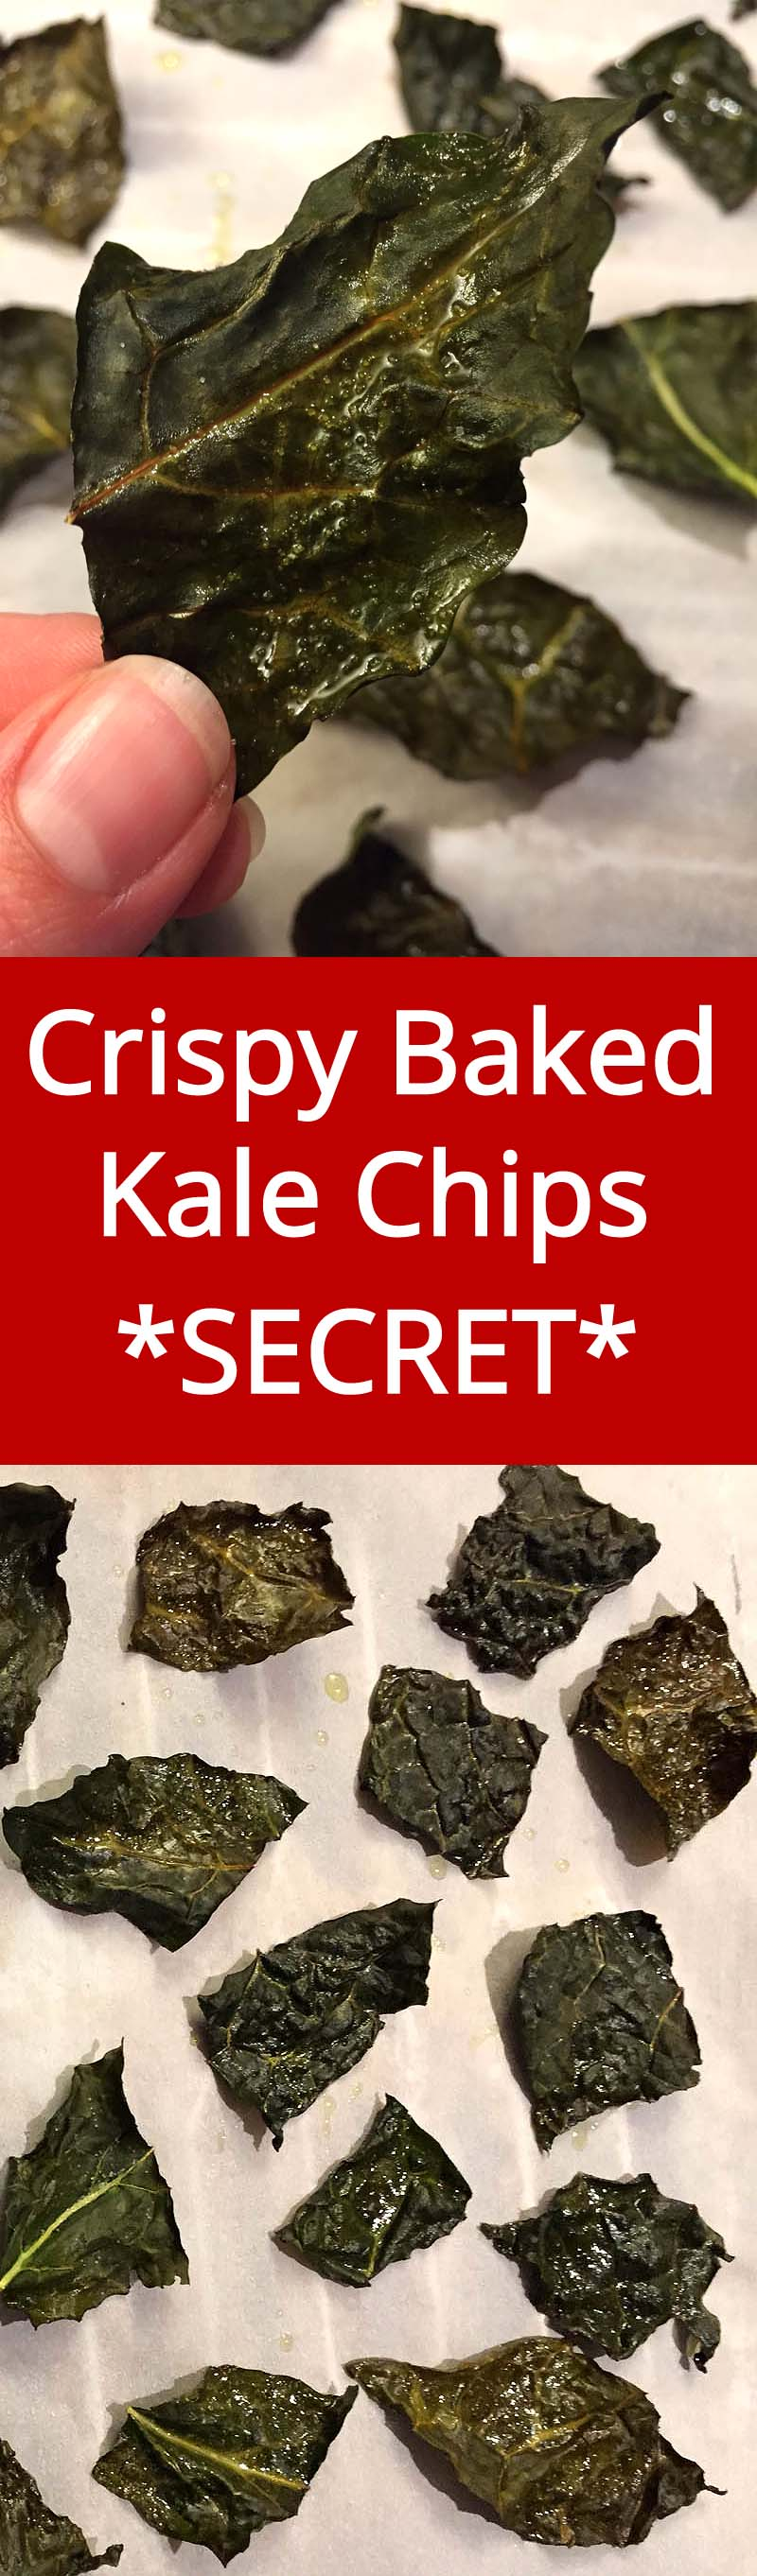 Crispy Baked Kale Chips - Super Crunchy, Yummy and Healthy! | MelanieCooks.com